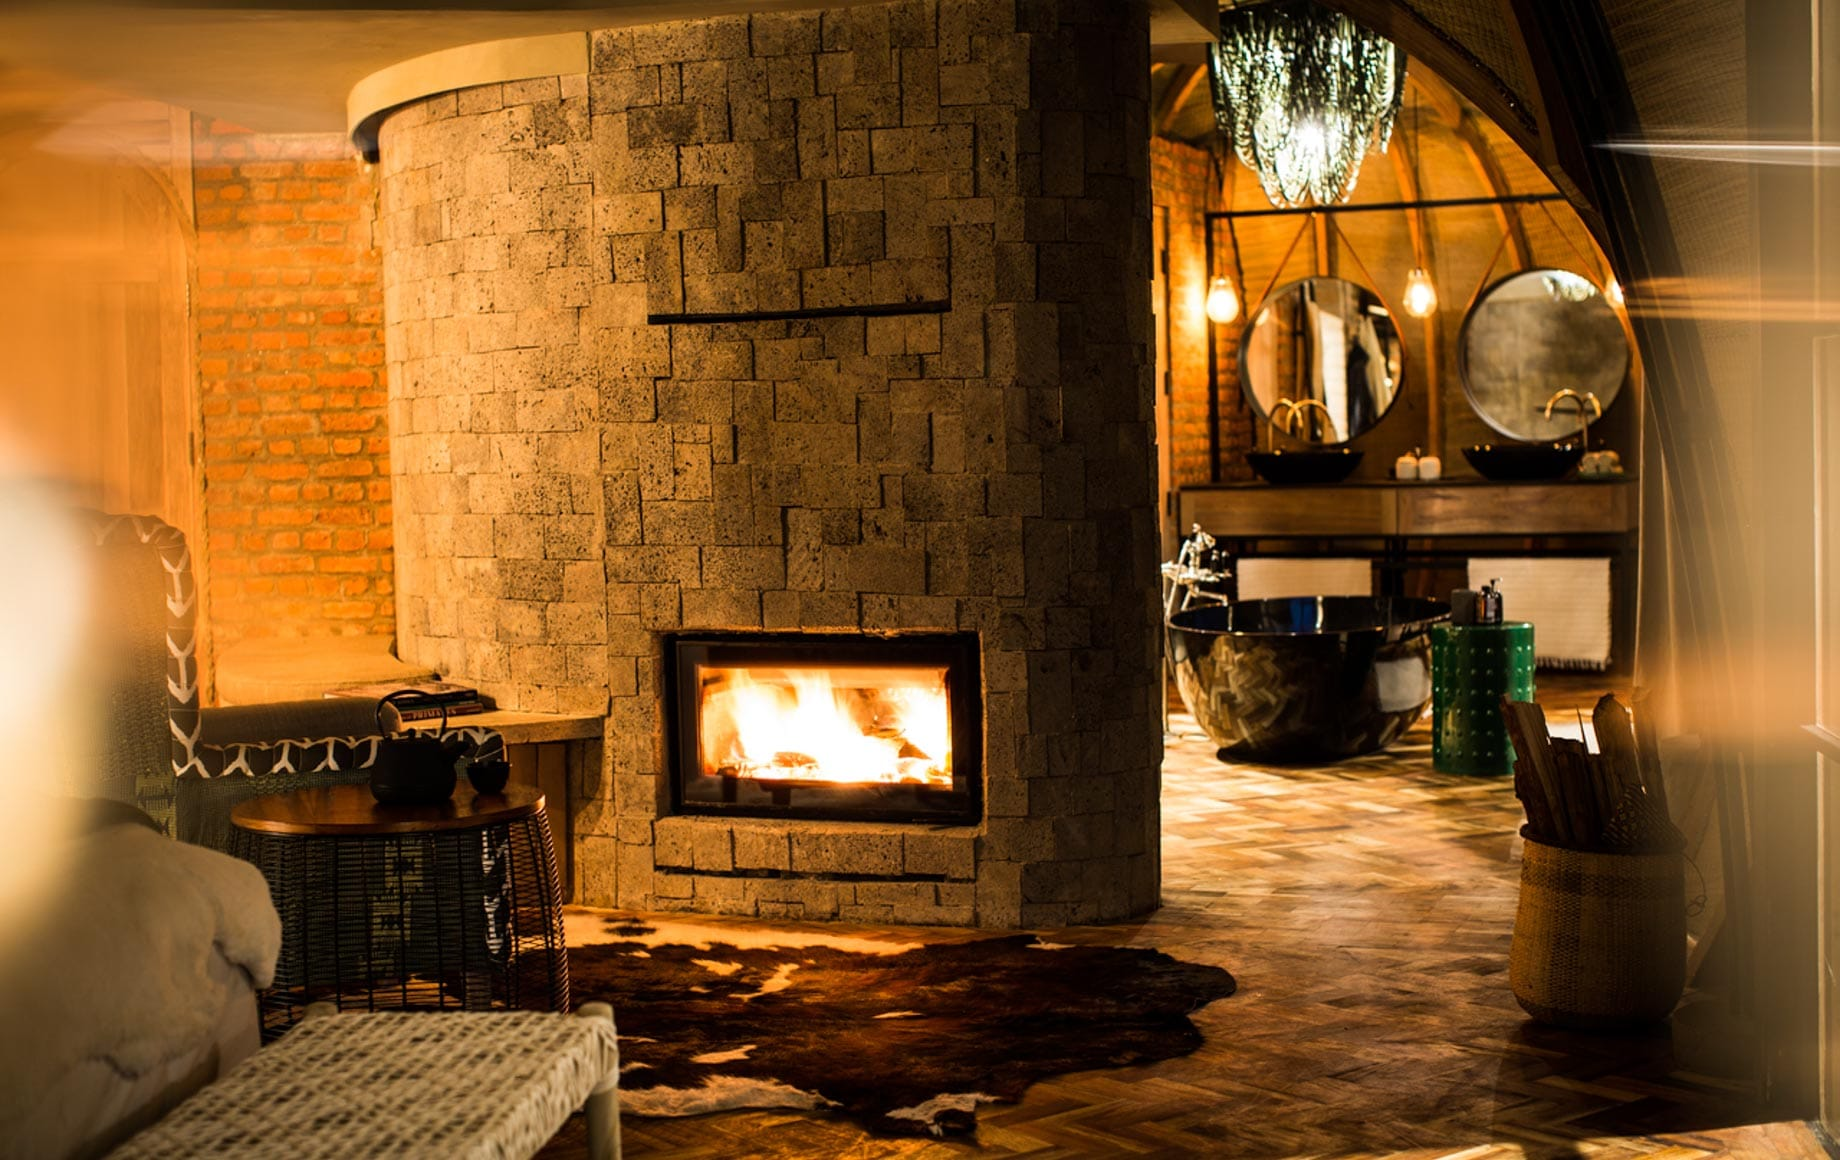 Warmth from Fireplace at Bisate Lodge in Africa